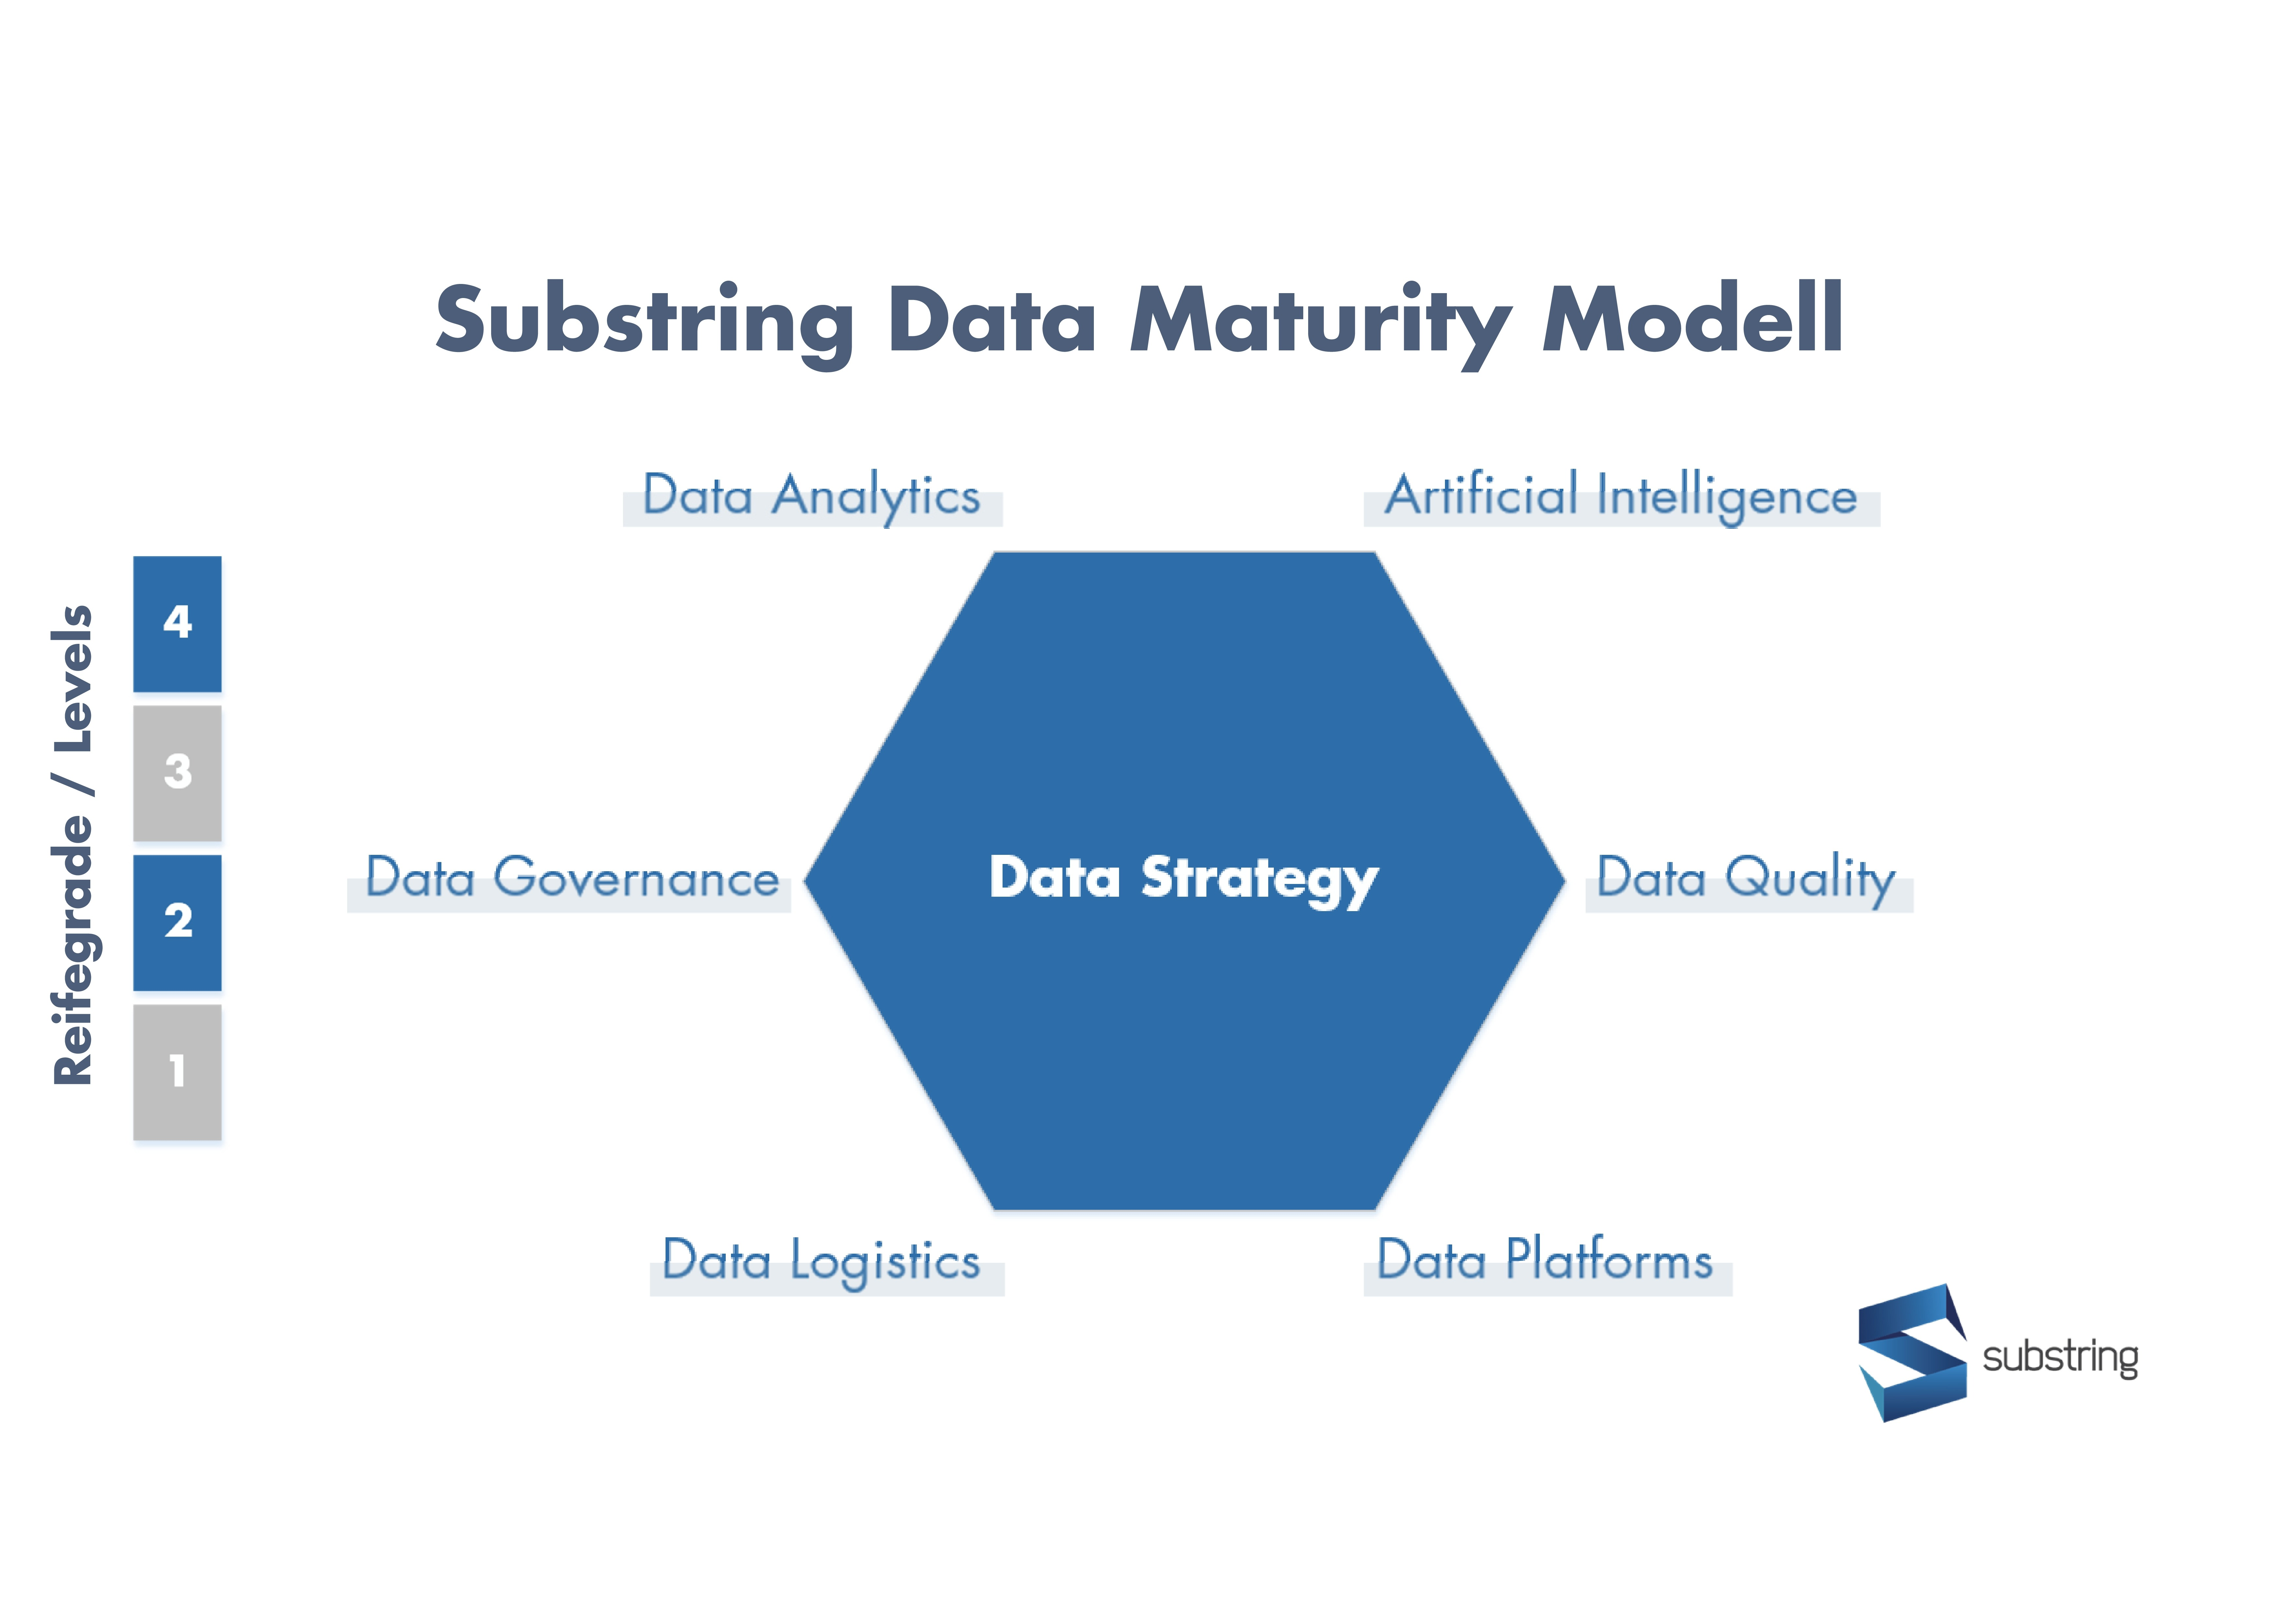 Substring Data Maturity Modell